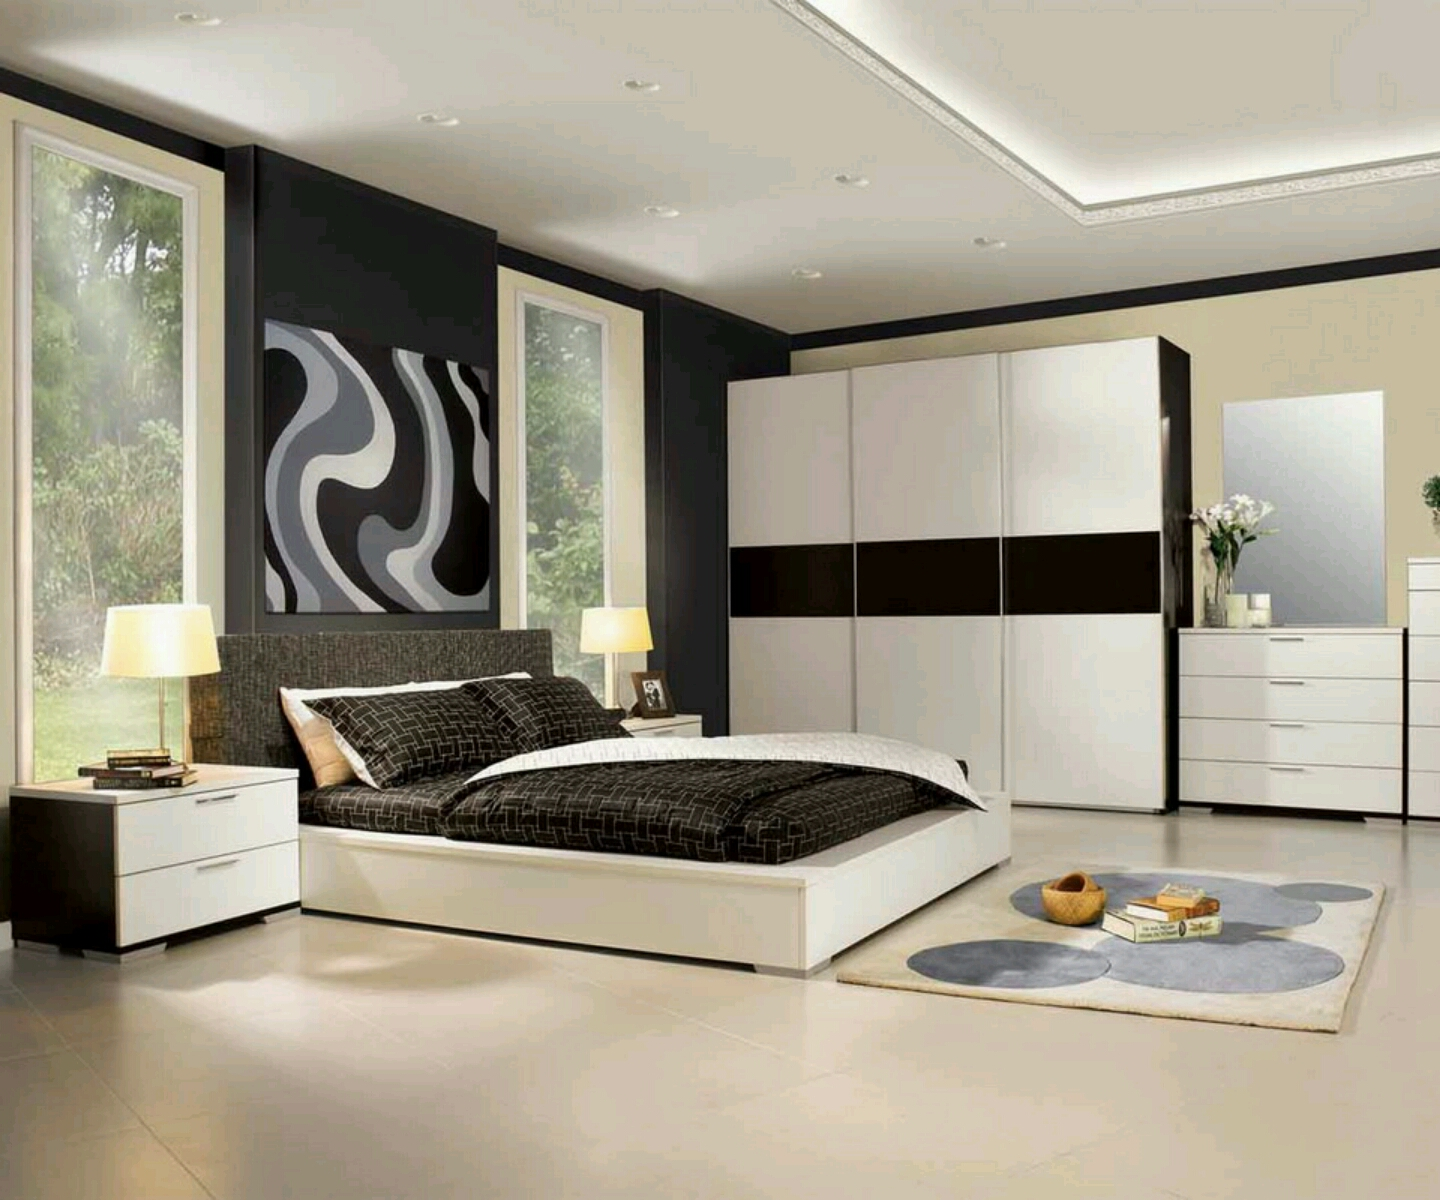 Best design home december 2012 - Bedroom furniture design ...